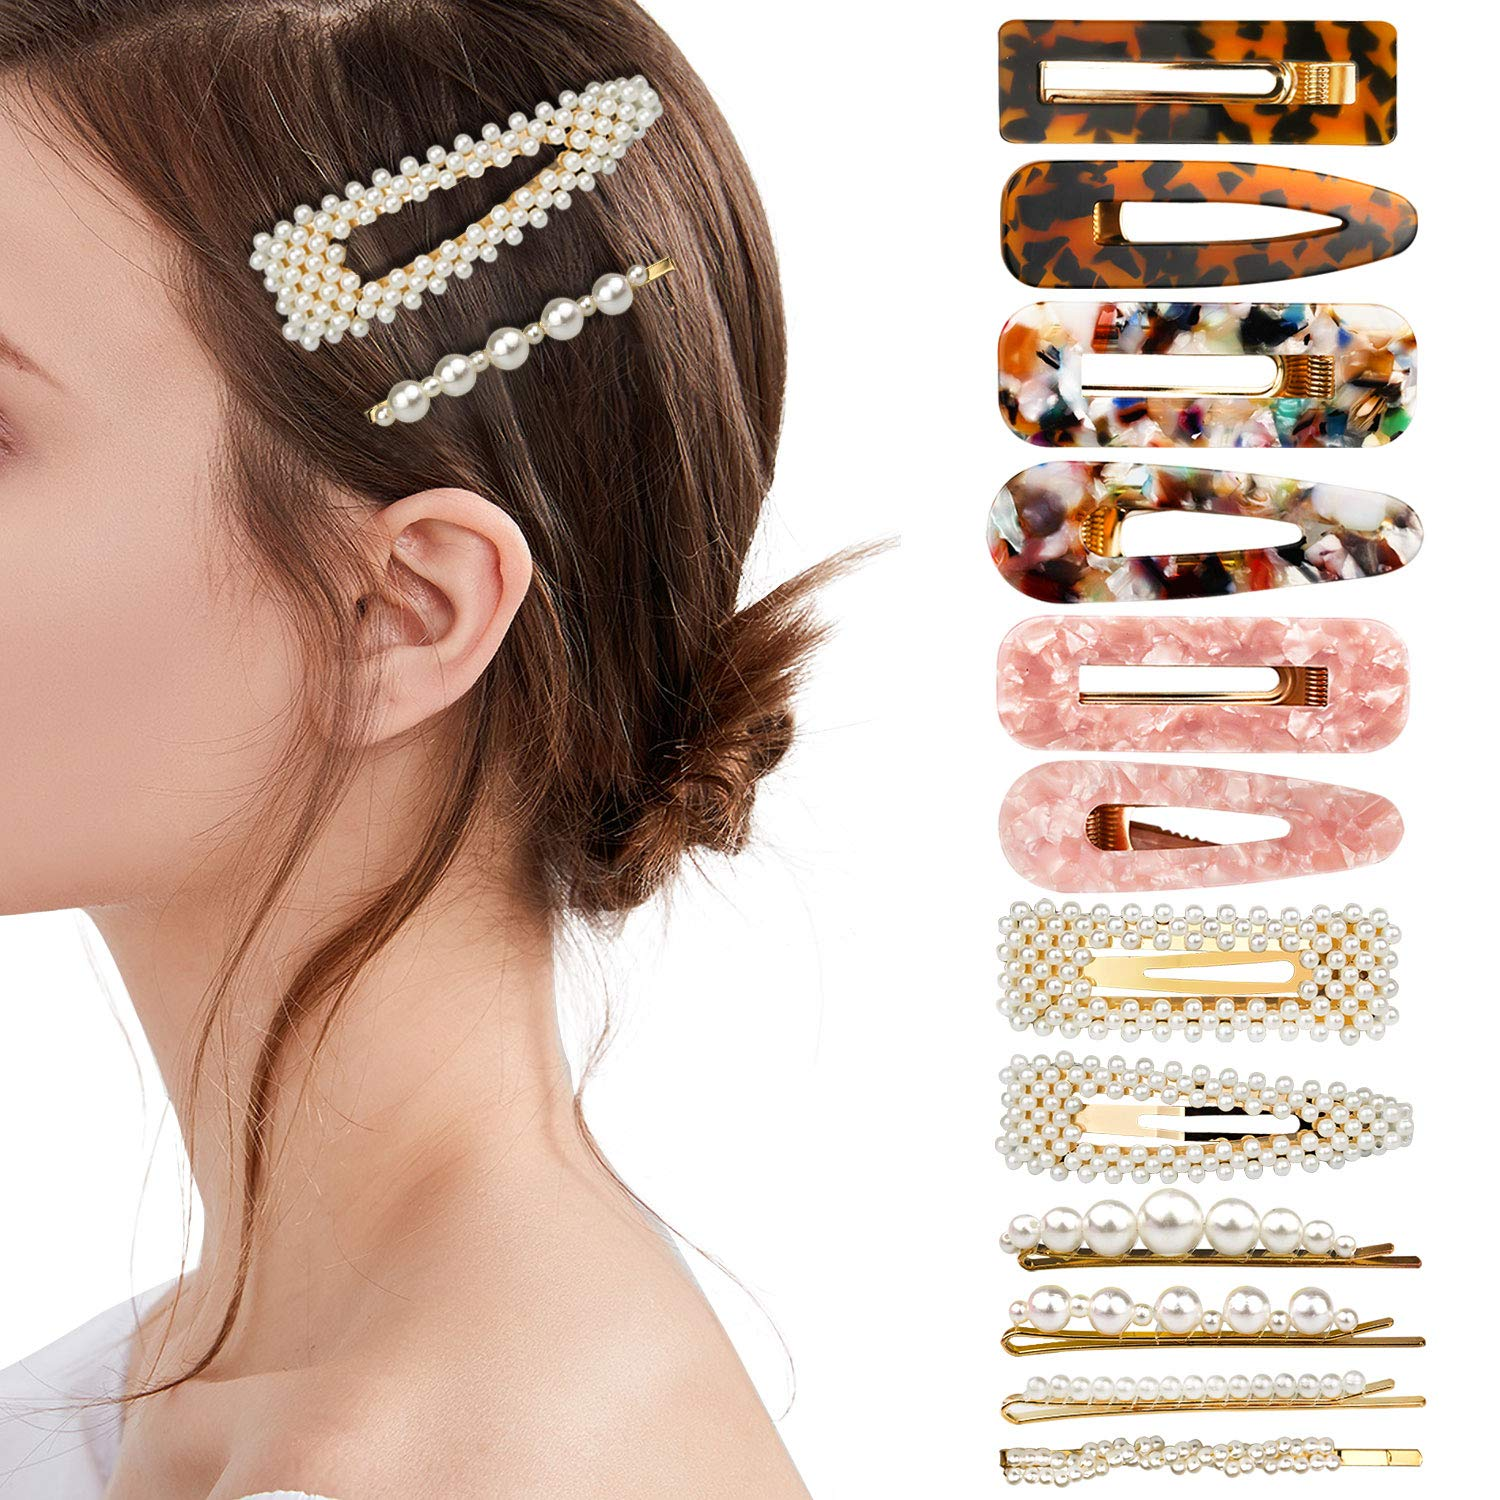 Langwolf Hair Clips for Women Girls, Styling Acrylic and Pearls Hair Barrettes for Ladies Short, Medium, Long, Braids Hair Decorations